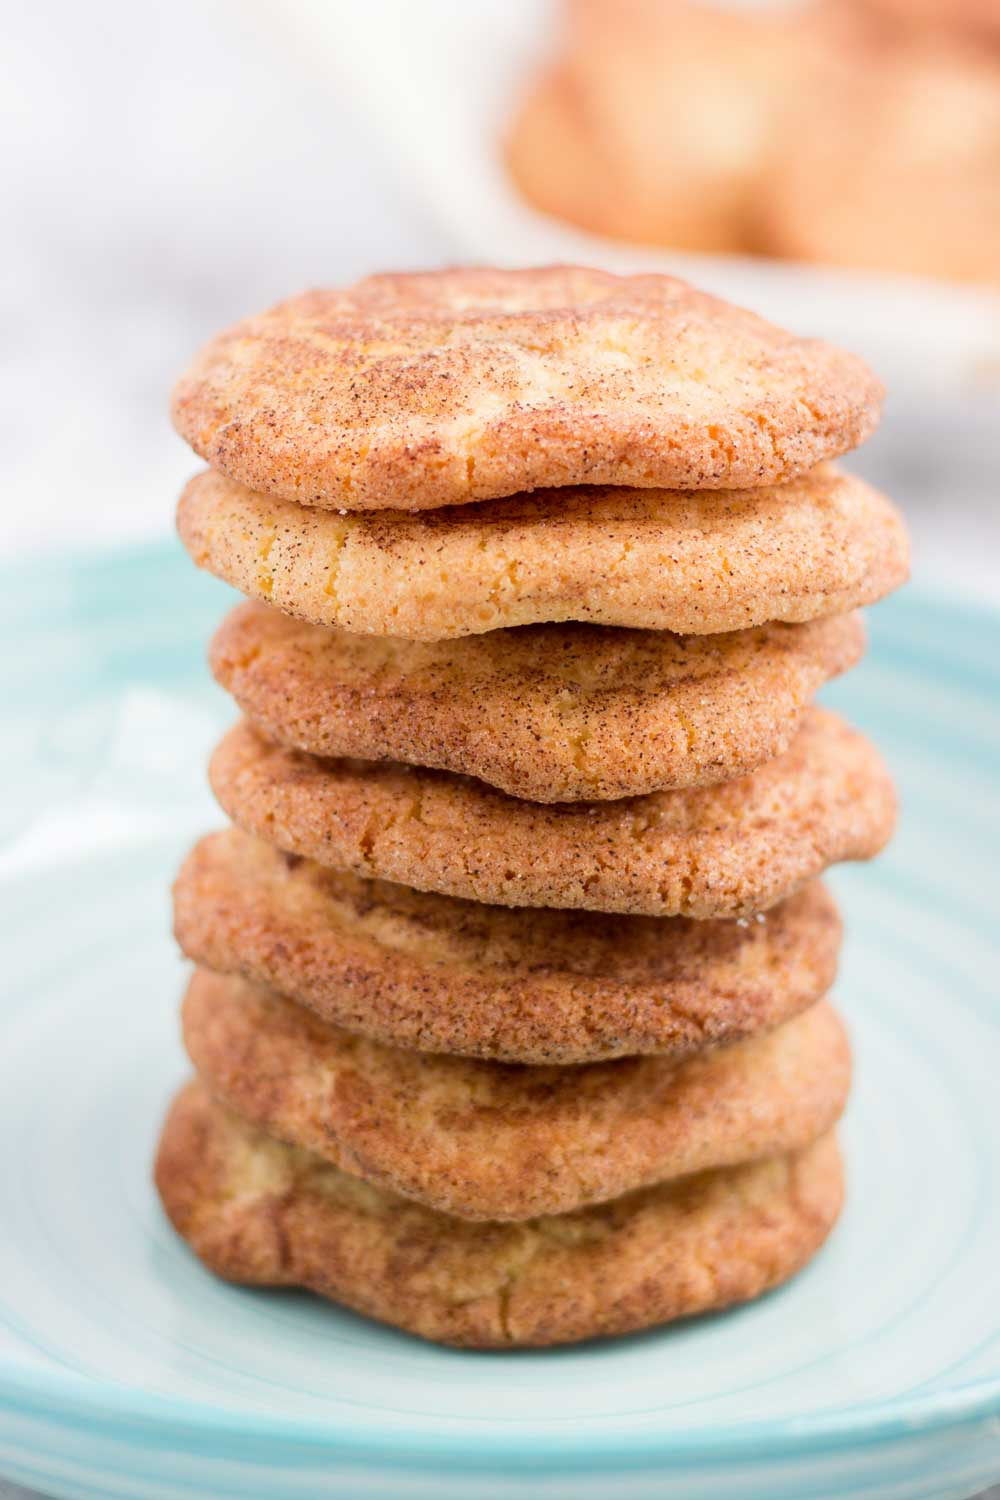 A stack of snickerdoodle cookies on a plate